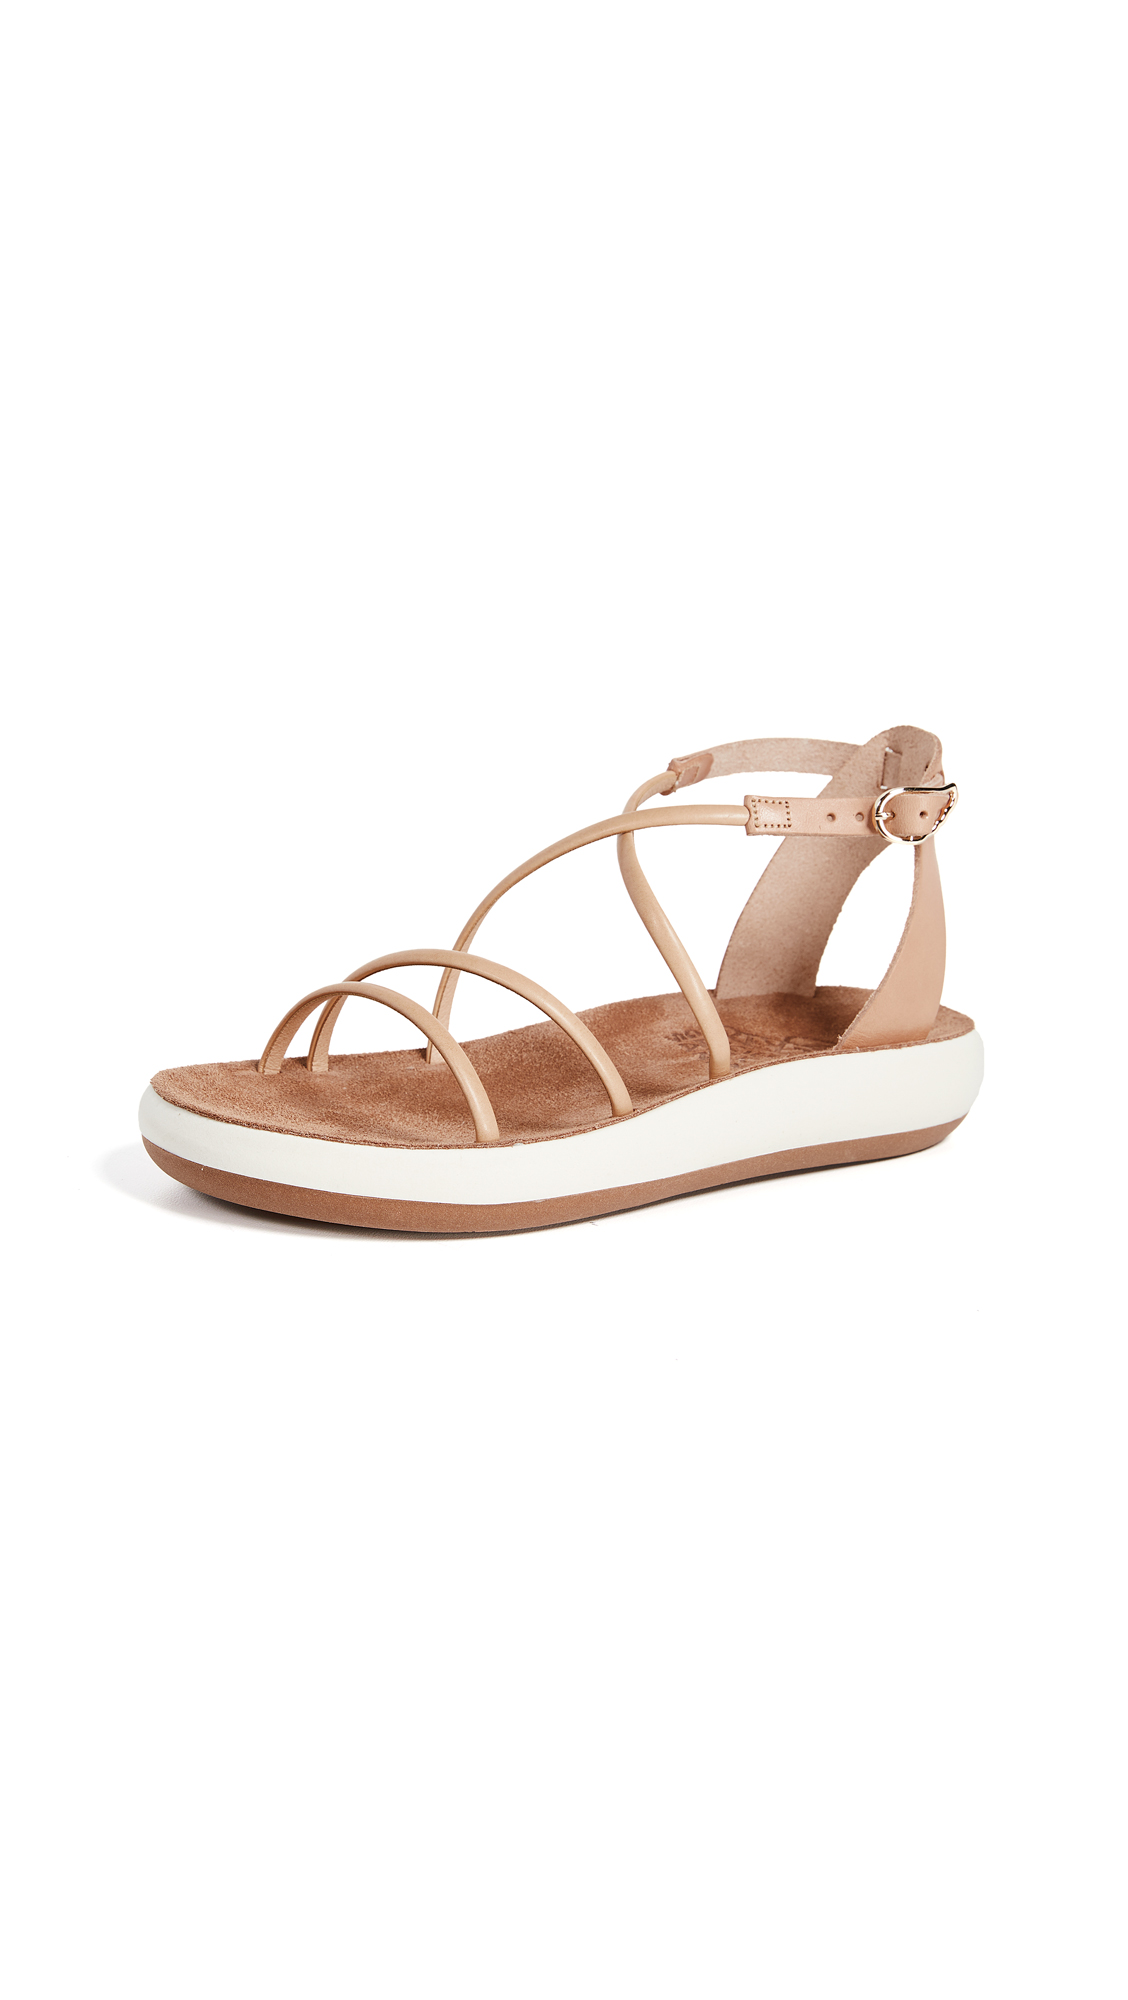 Ancient Greek Sandals Anastasia Comfort Sandals - Natural